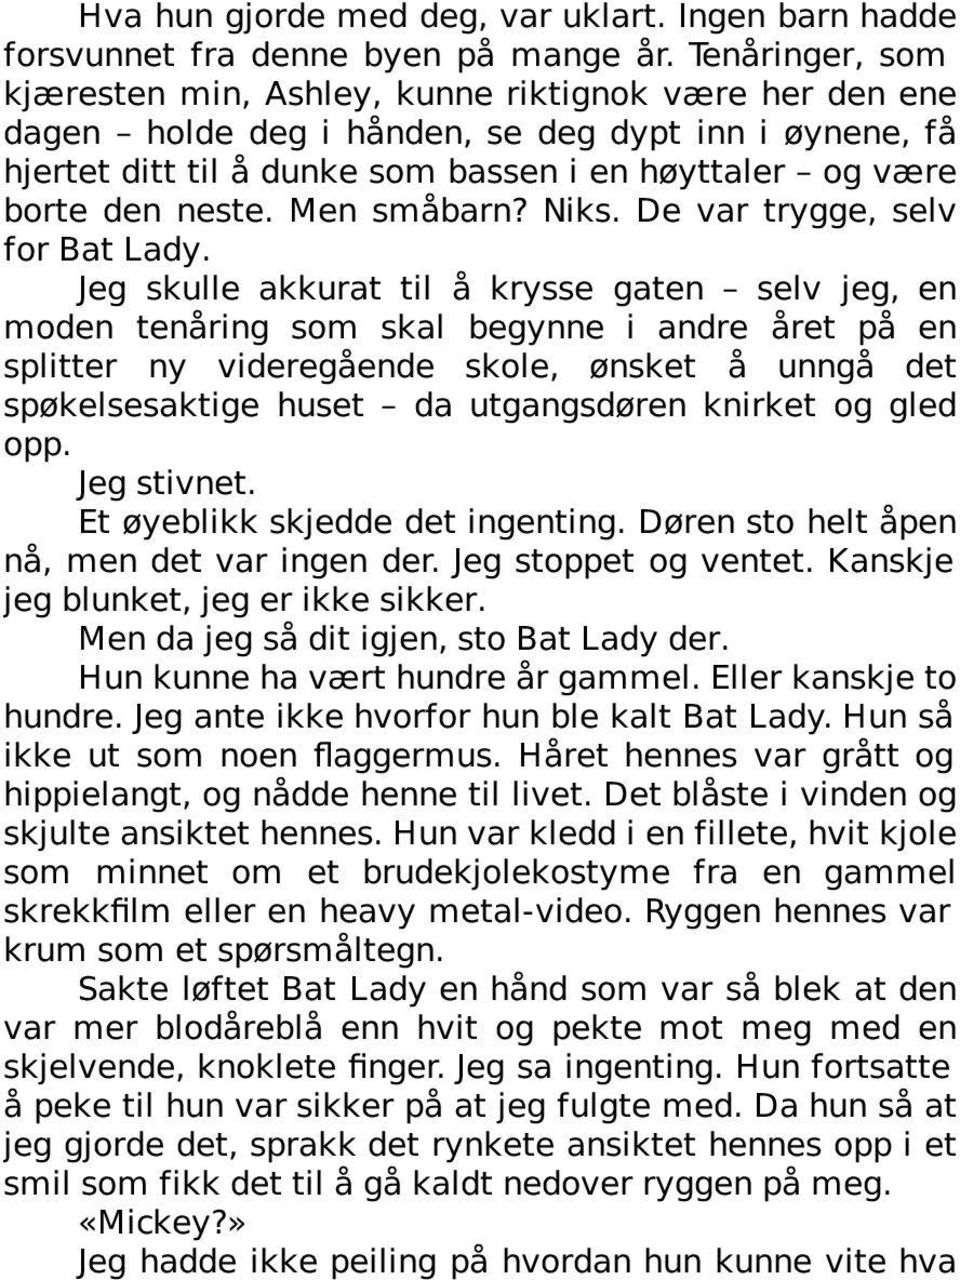 neste. Men småbarn? Niks. De var trygge, selv for Bat Lady.